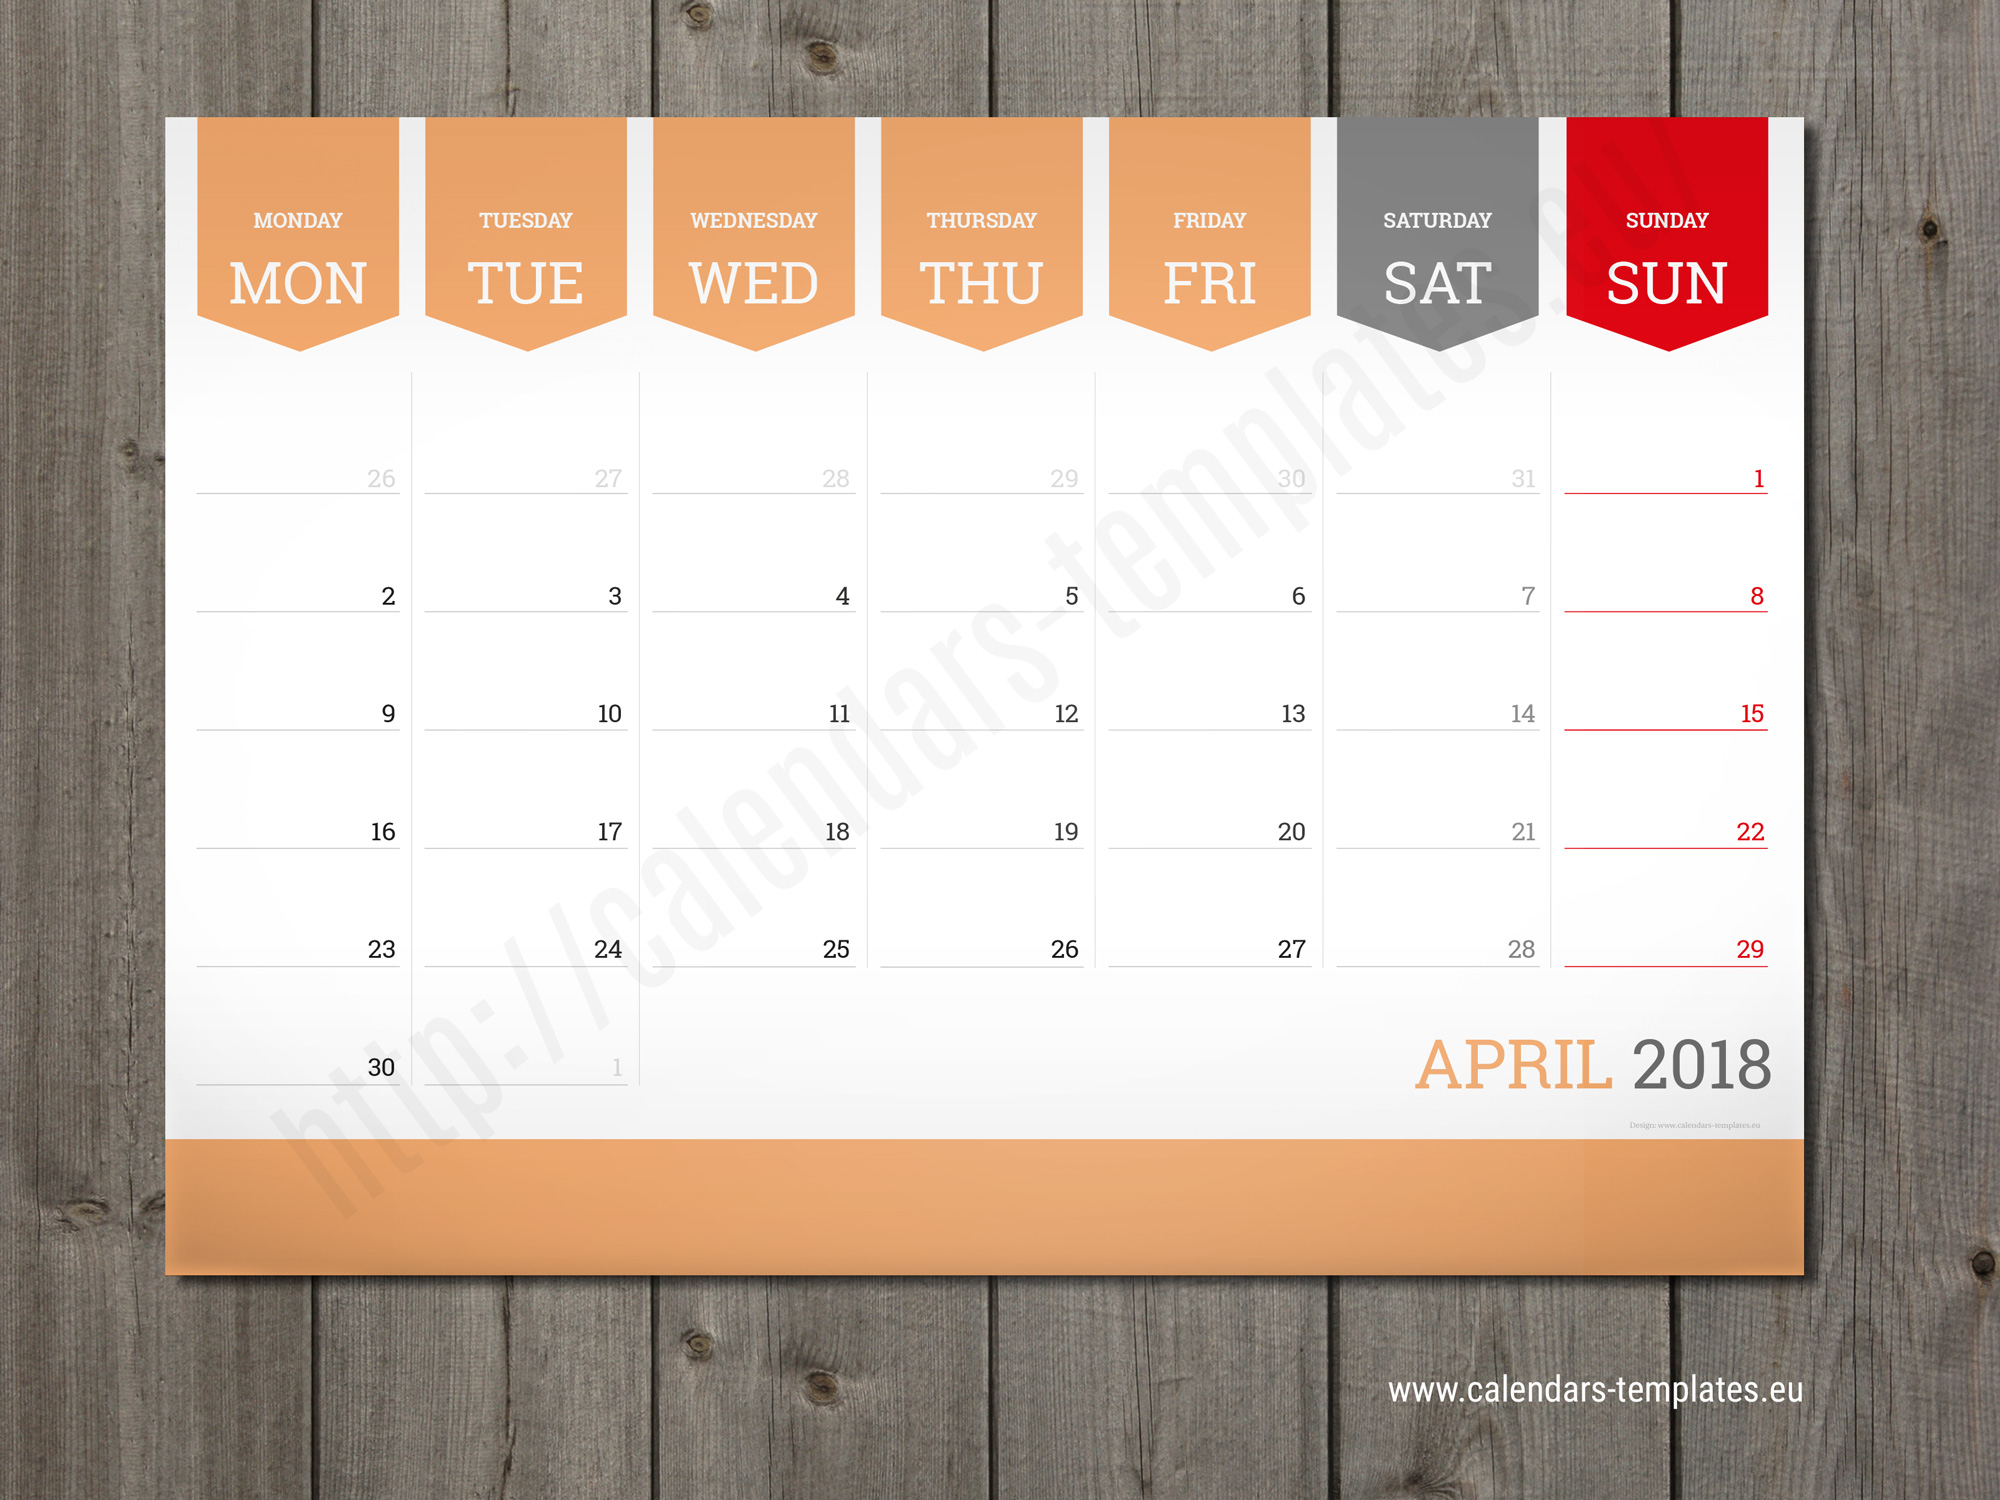 Quarterly Calendar Design : Monthly calendar planner wall or table pad